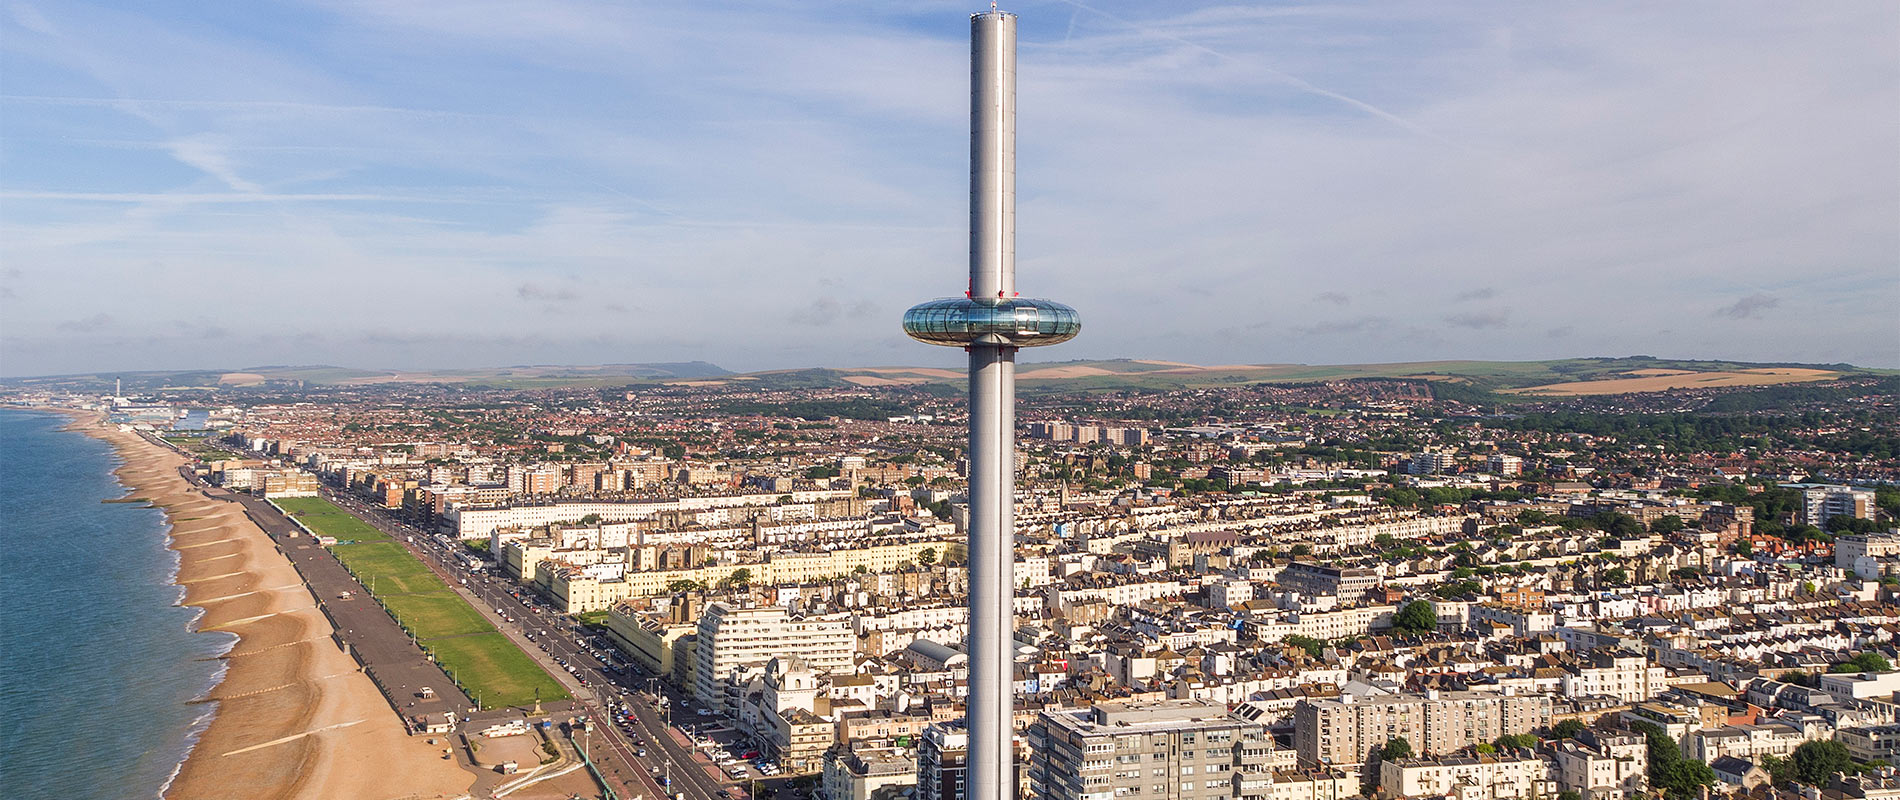 Image credit: British Airways i360